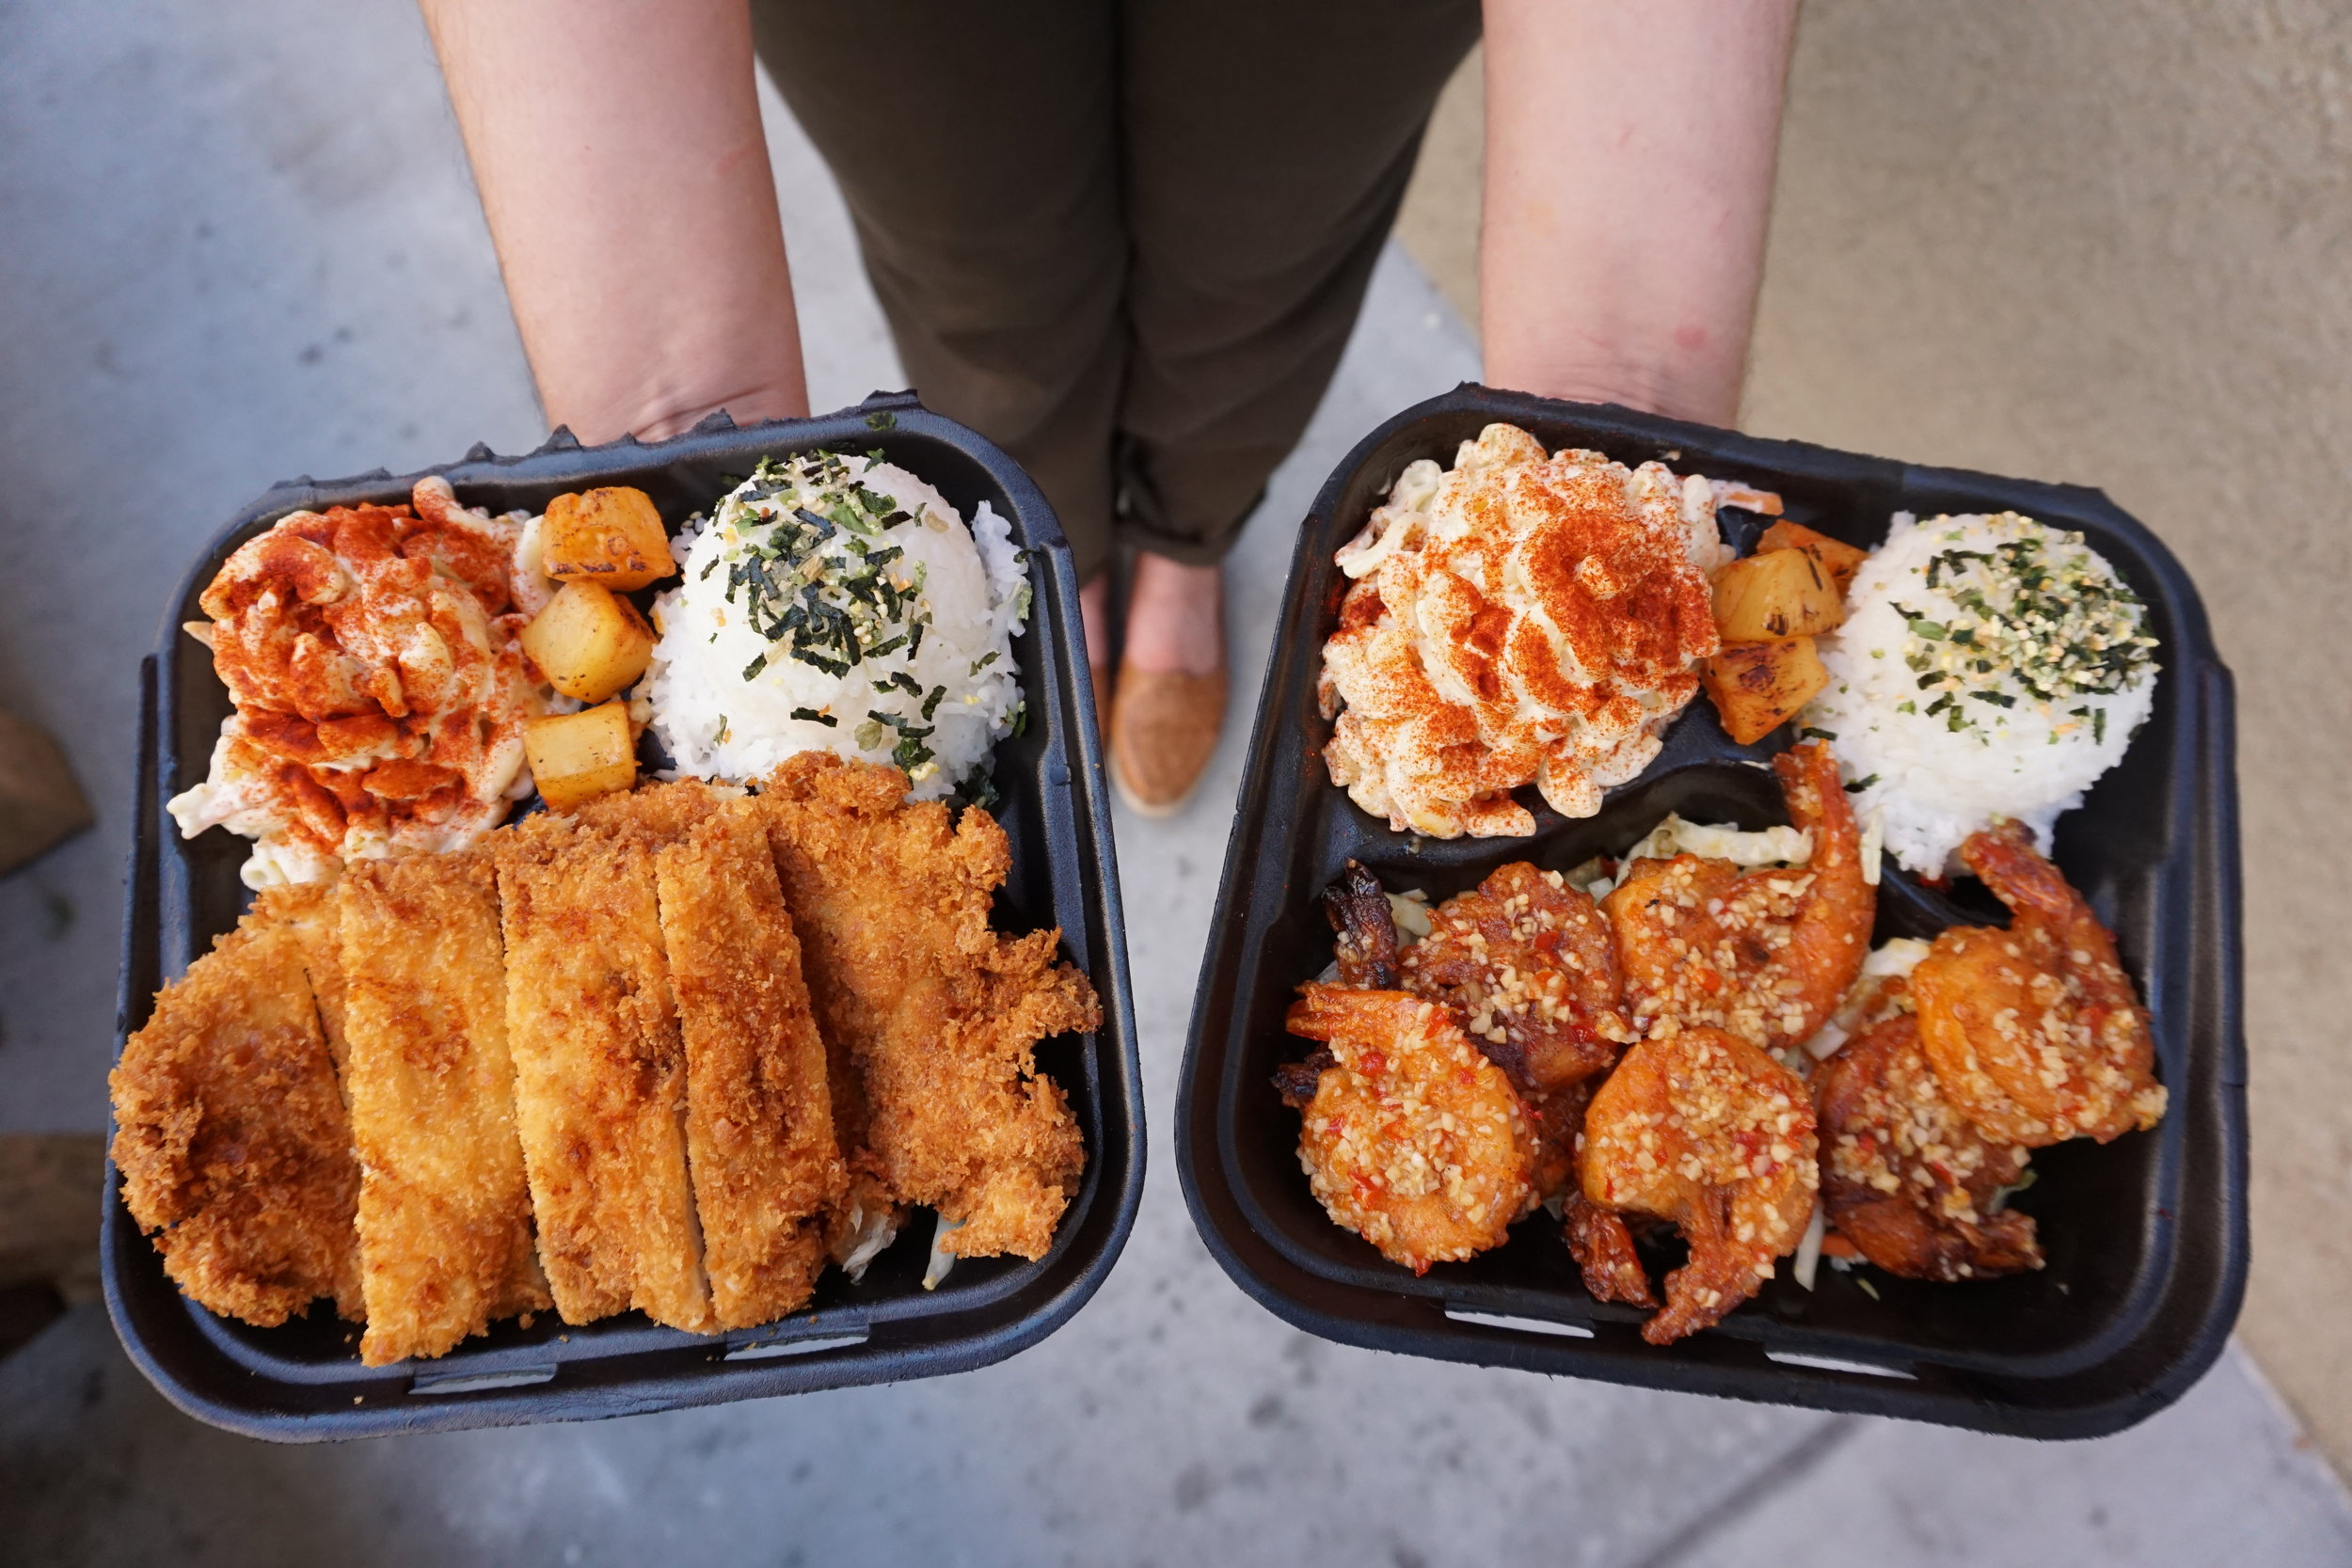 Faka Island Grill's popular Chicken Katsu Plate and Garlic Shrimp Plate | photo courtesy of 100inc Agency